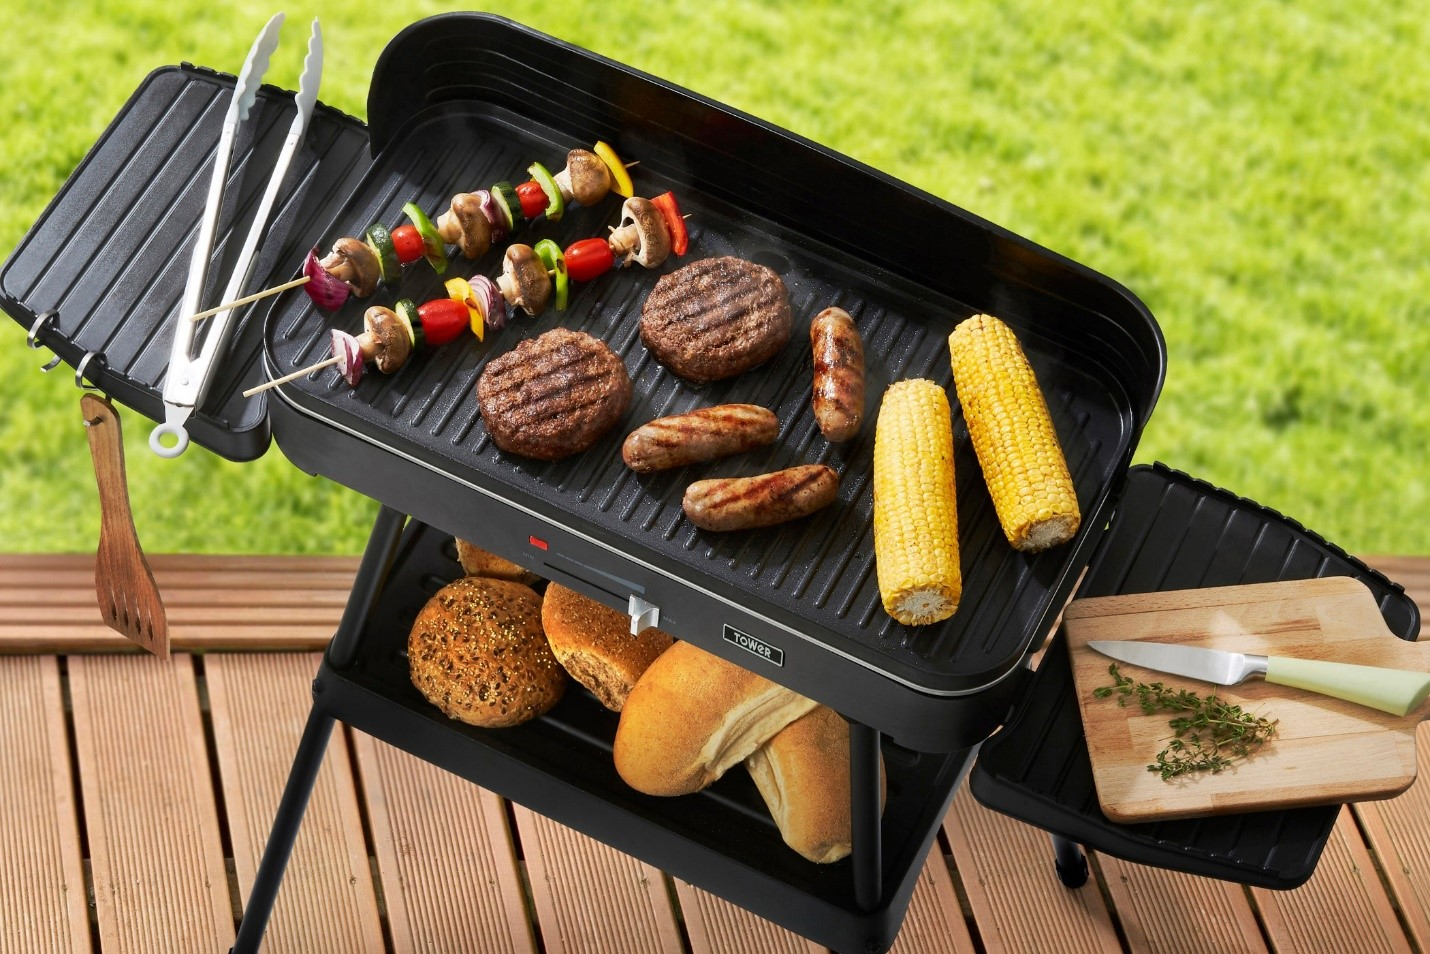 Tips for Choosing Suitable Barbecue Grills